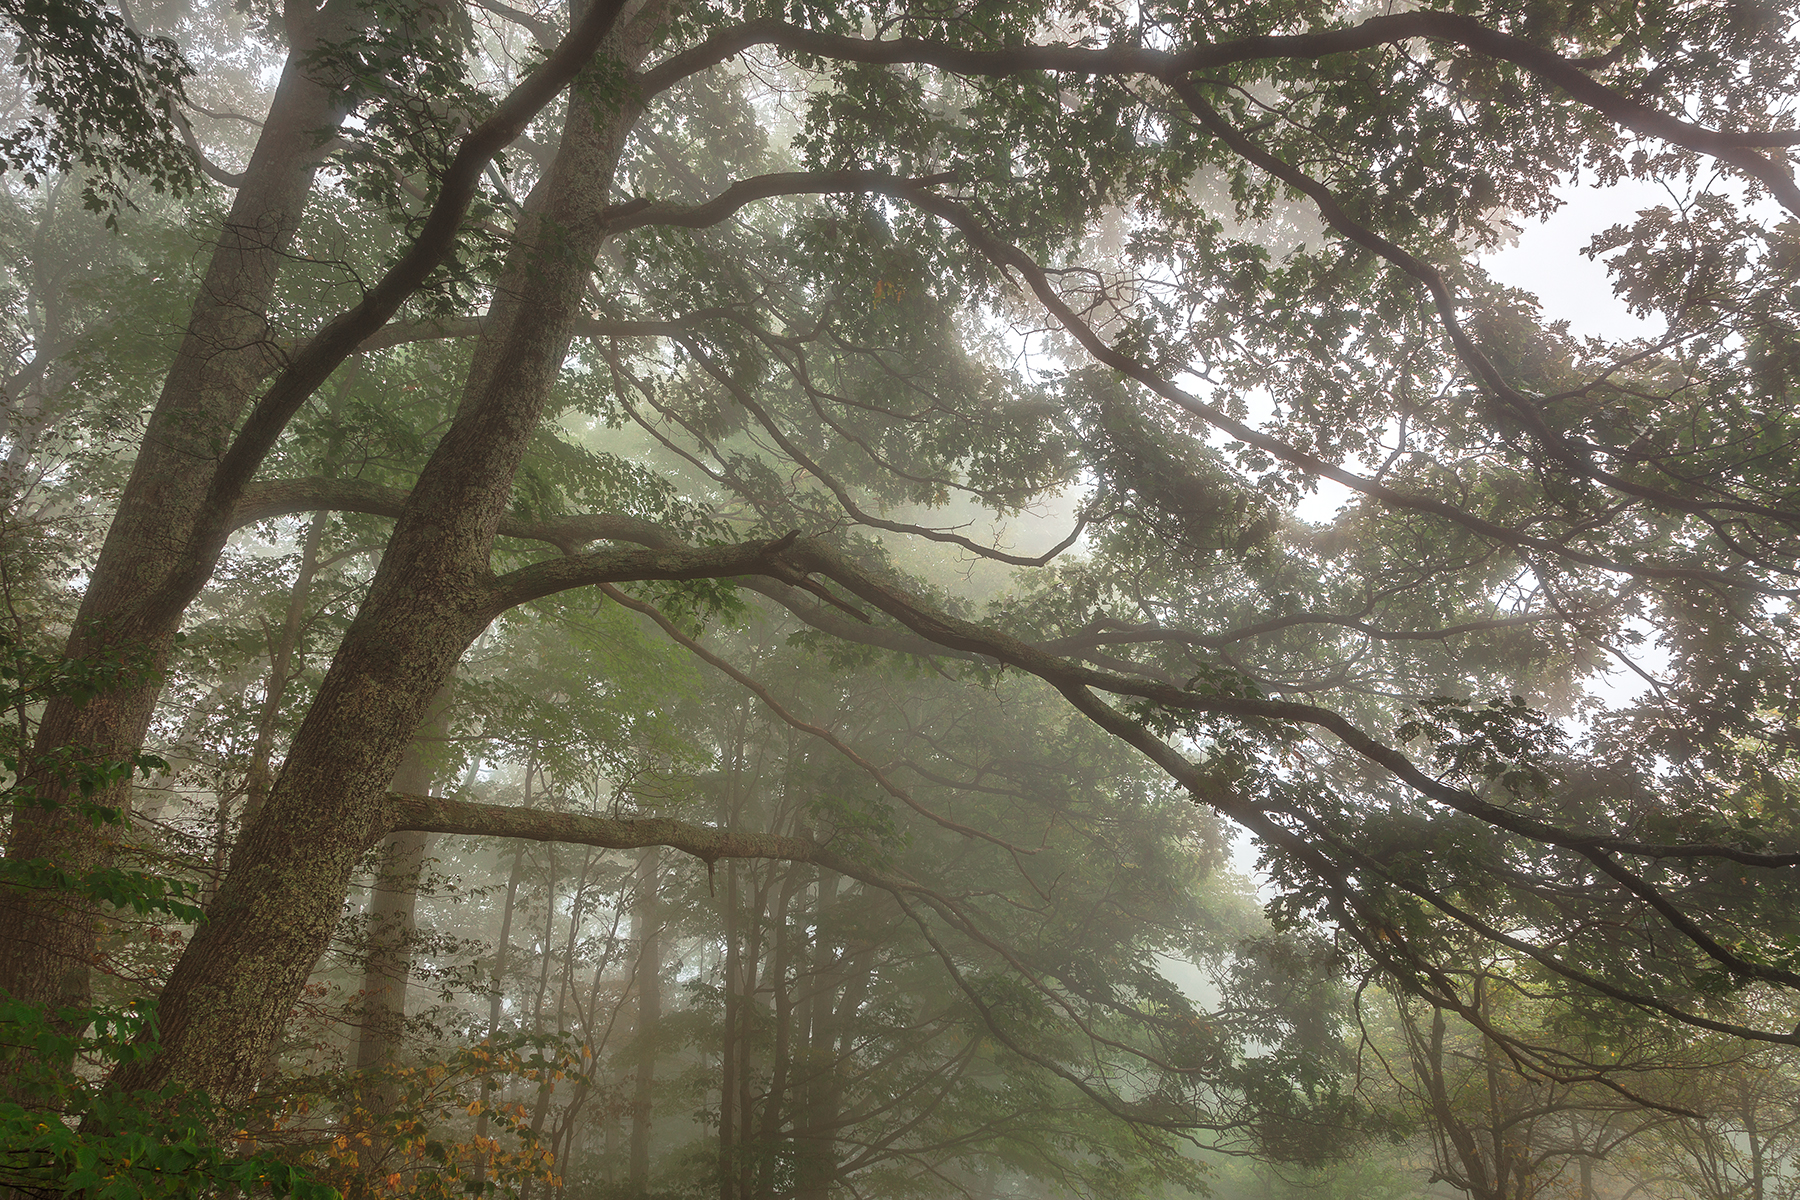 Misty forest branchscape - hdr photo